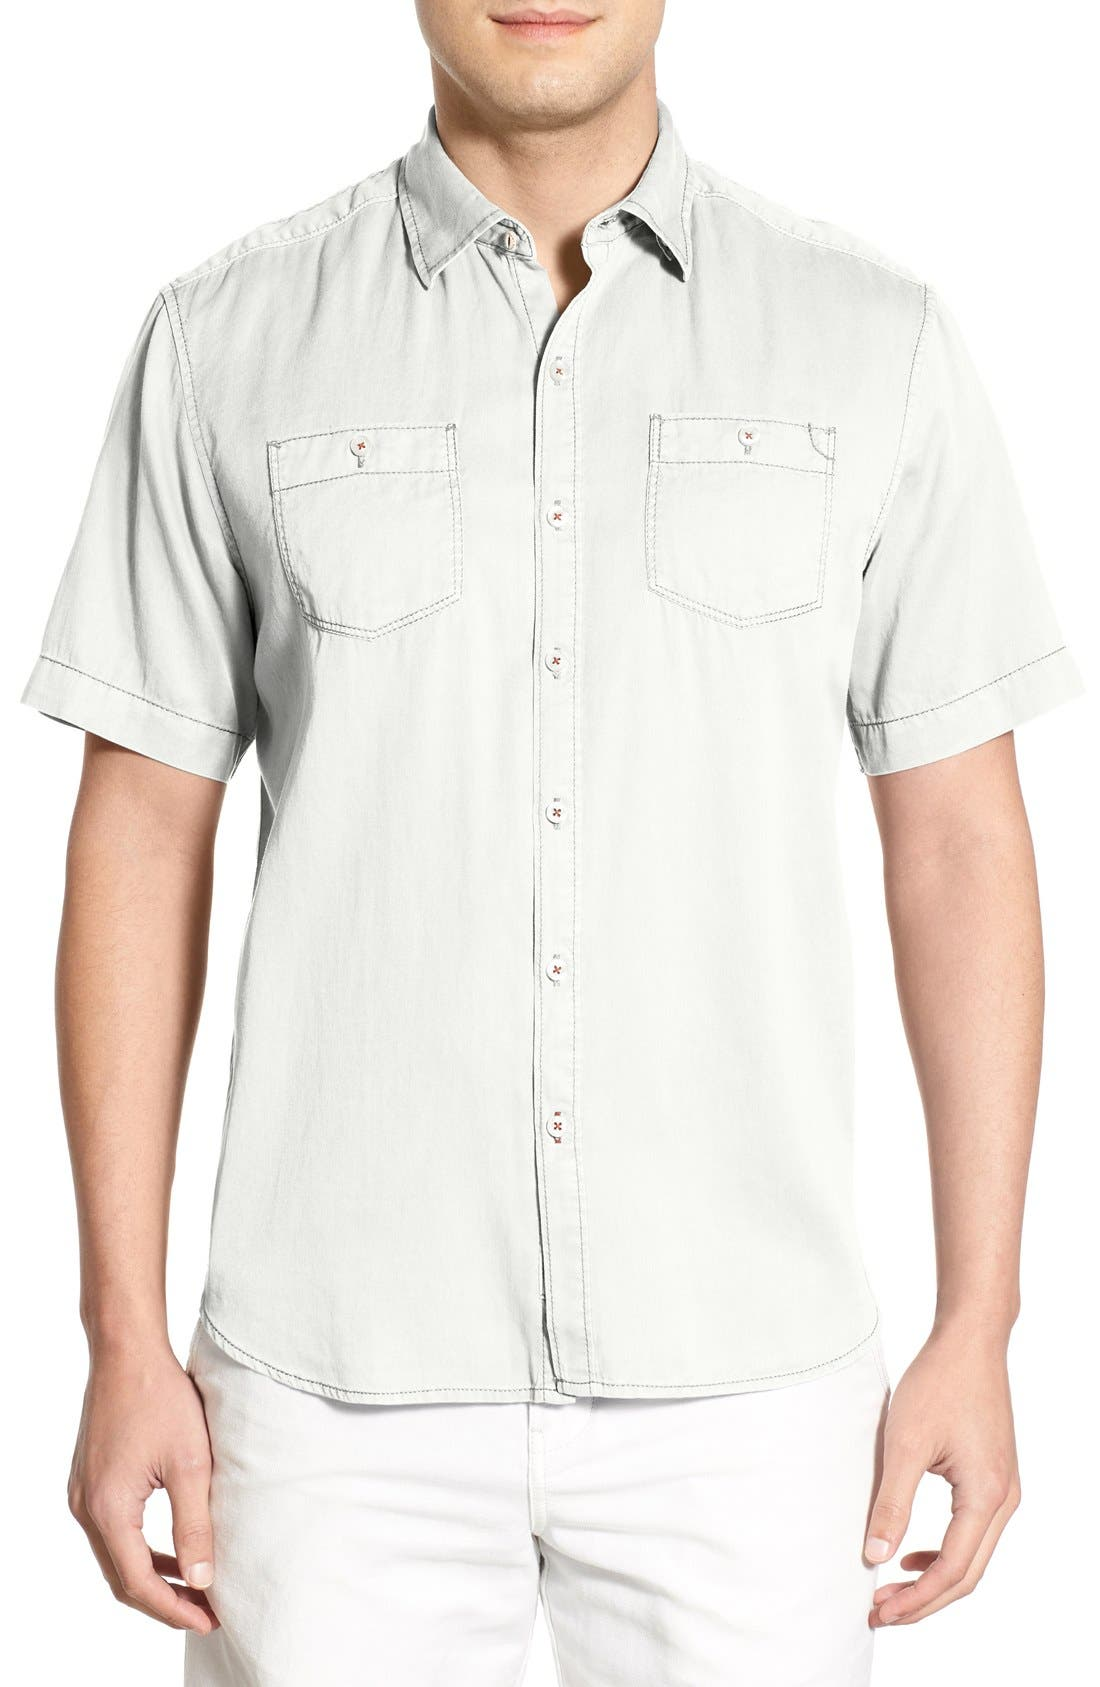 'New Twilly' Island Modern Fit Short Sleeve Twill Shirt,                             Main thumbnail 1, color,                             White